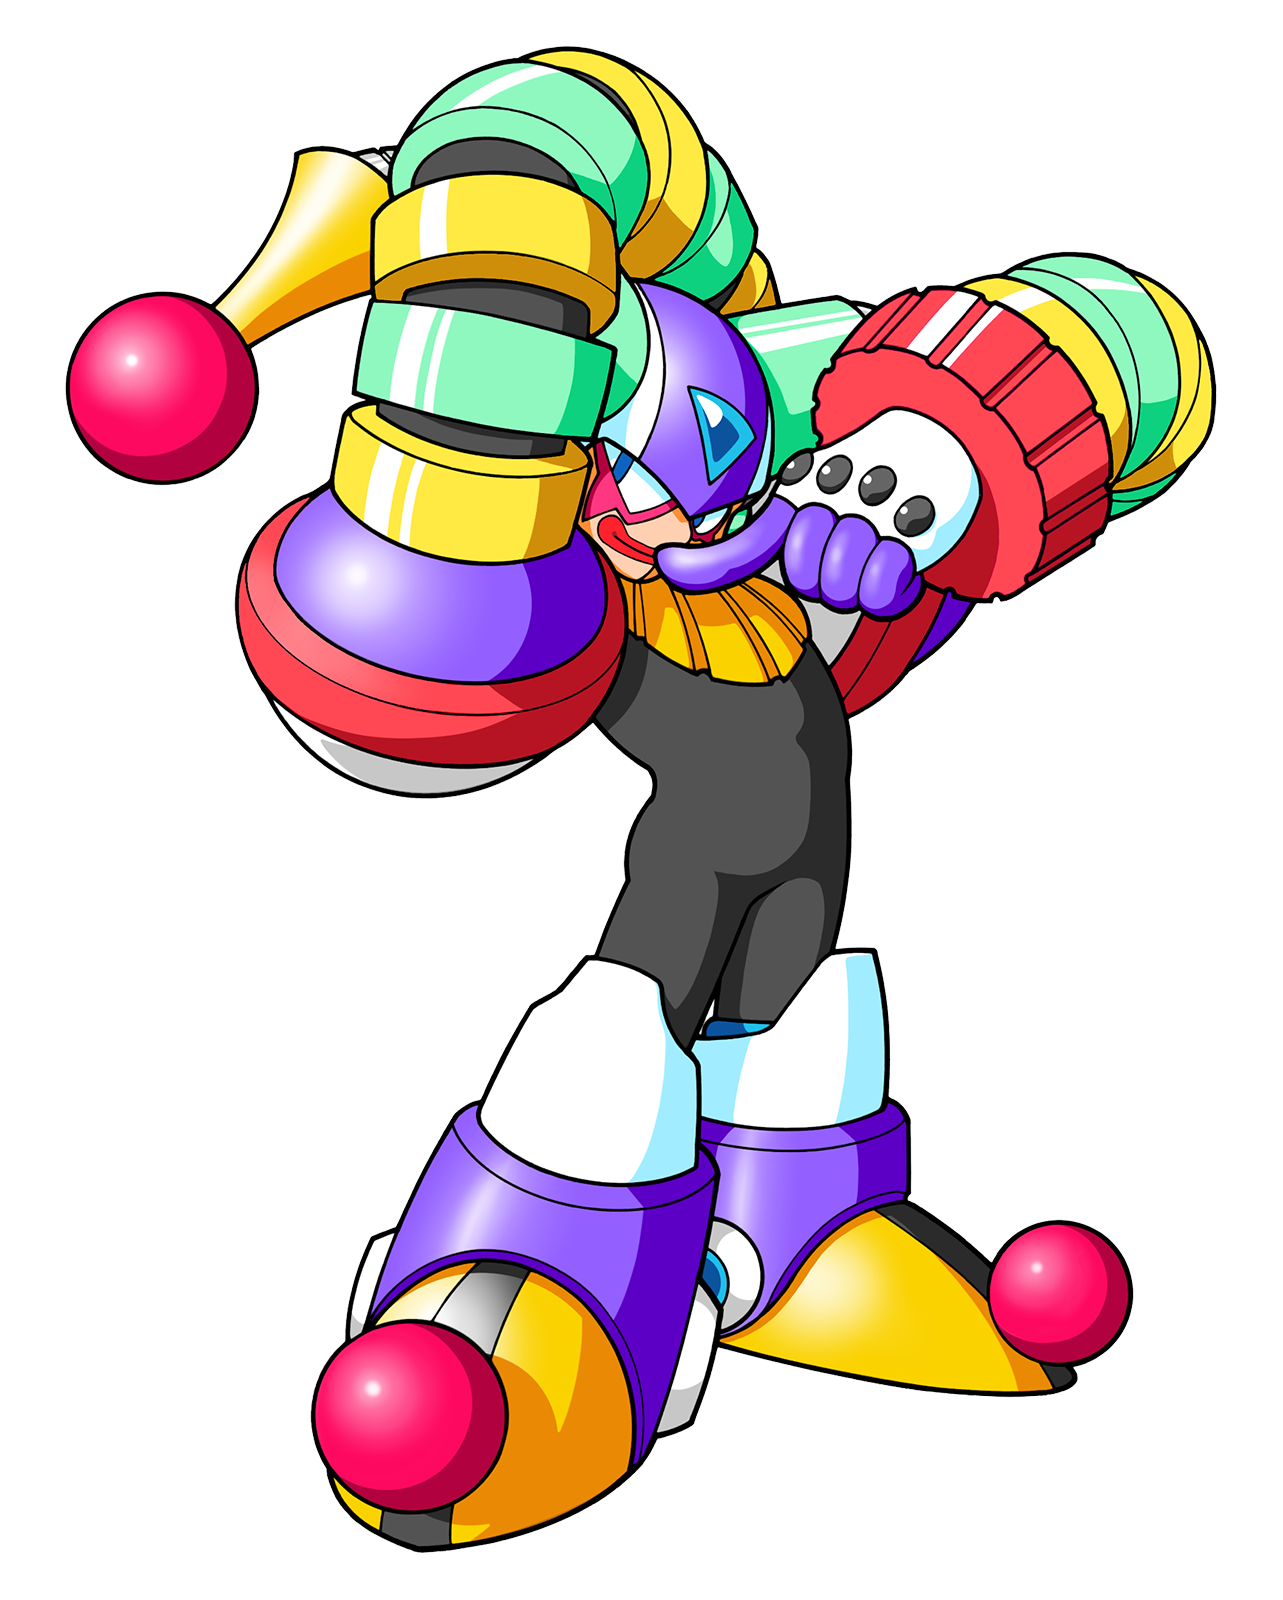 Archivo:Clownman1.png